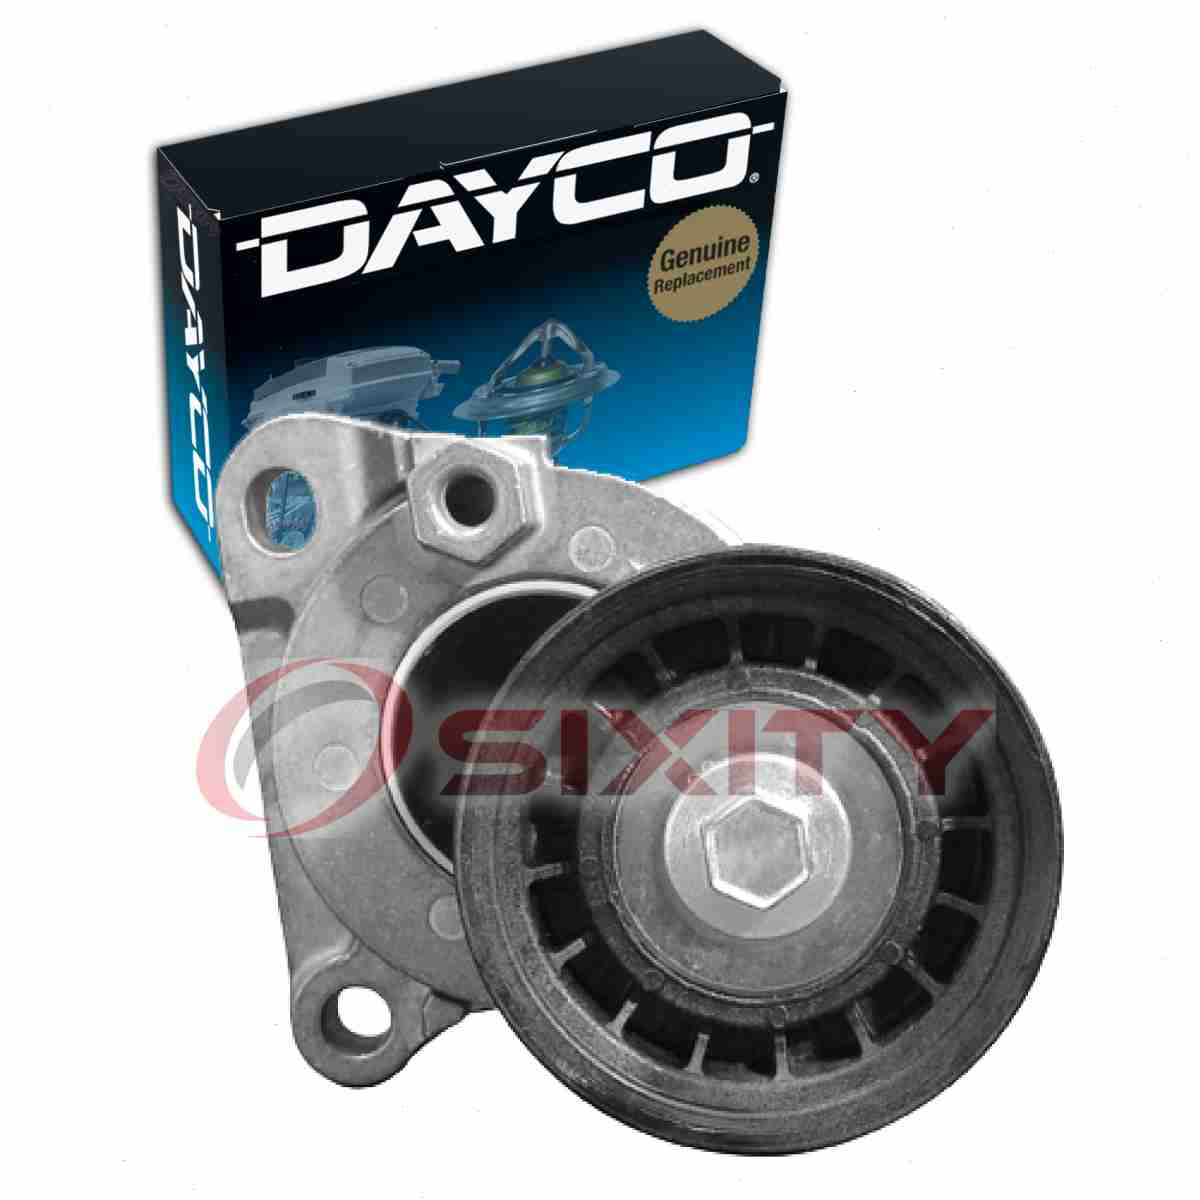 Dayco Drive Belt Pulley For 2005-2012 Ford Escape 2.3L 2